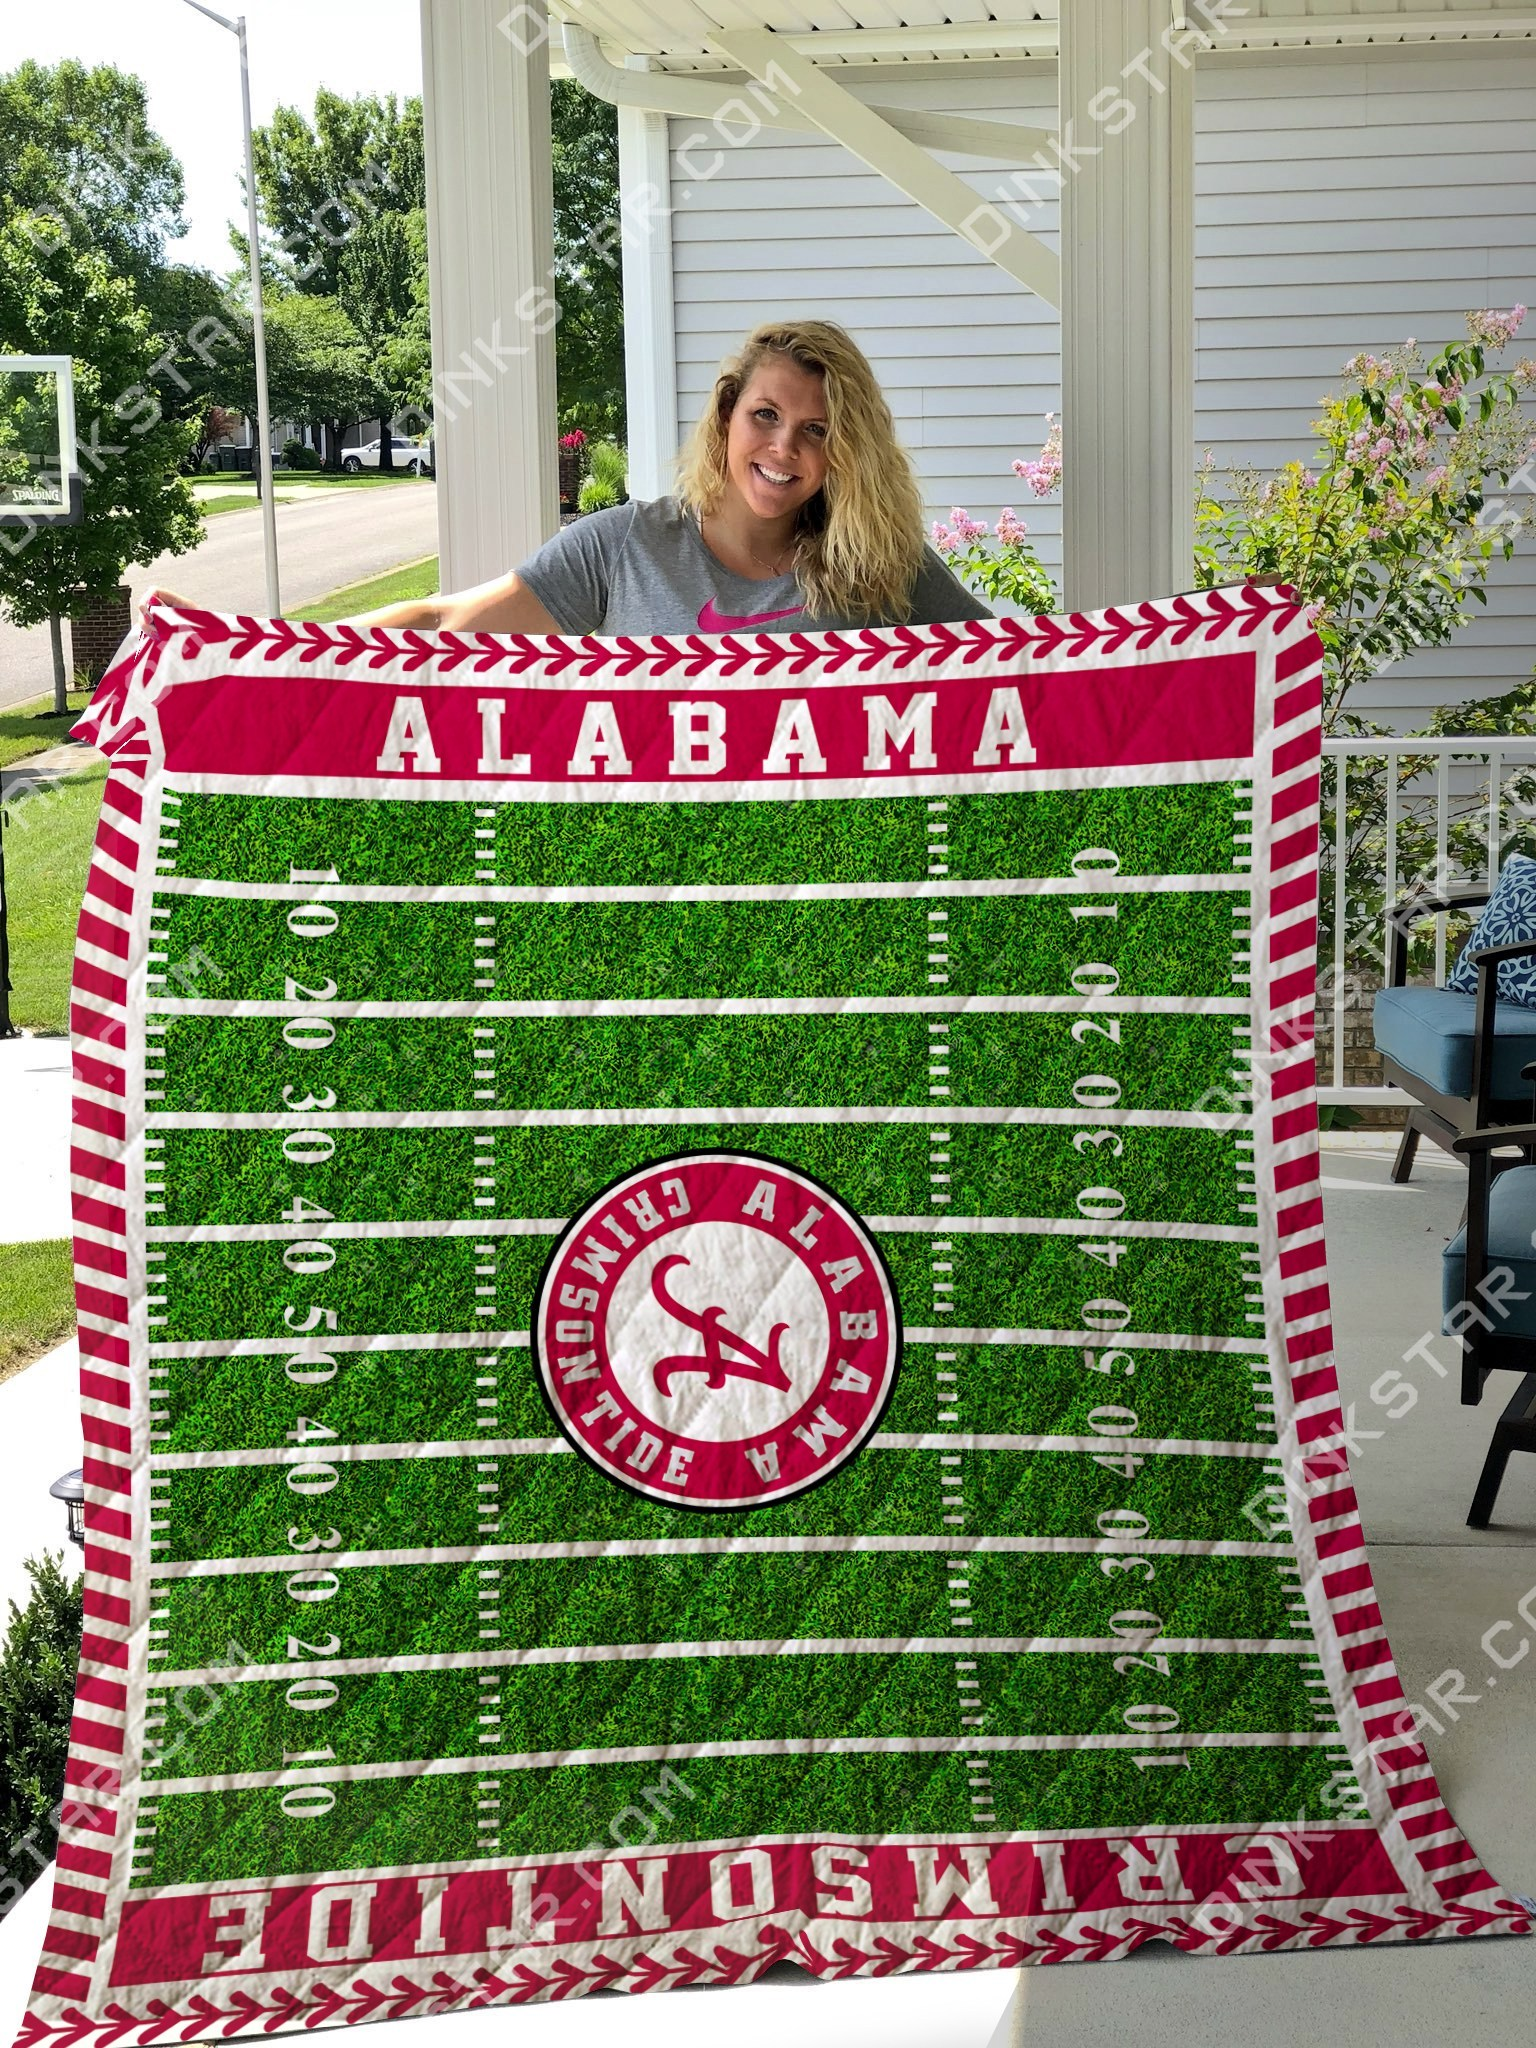 Alabama crimson tide football quilt 4